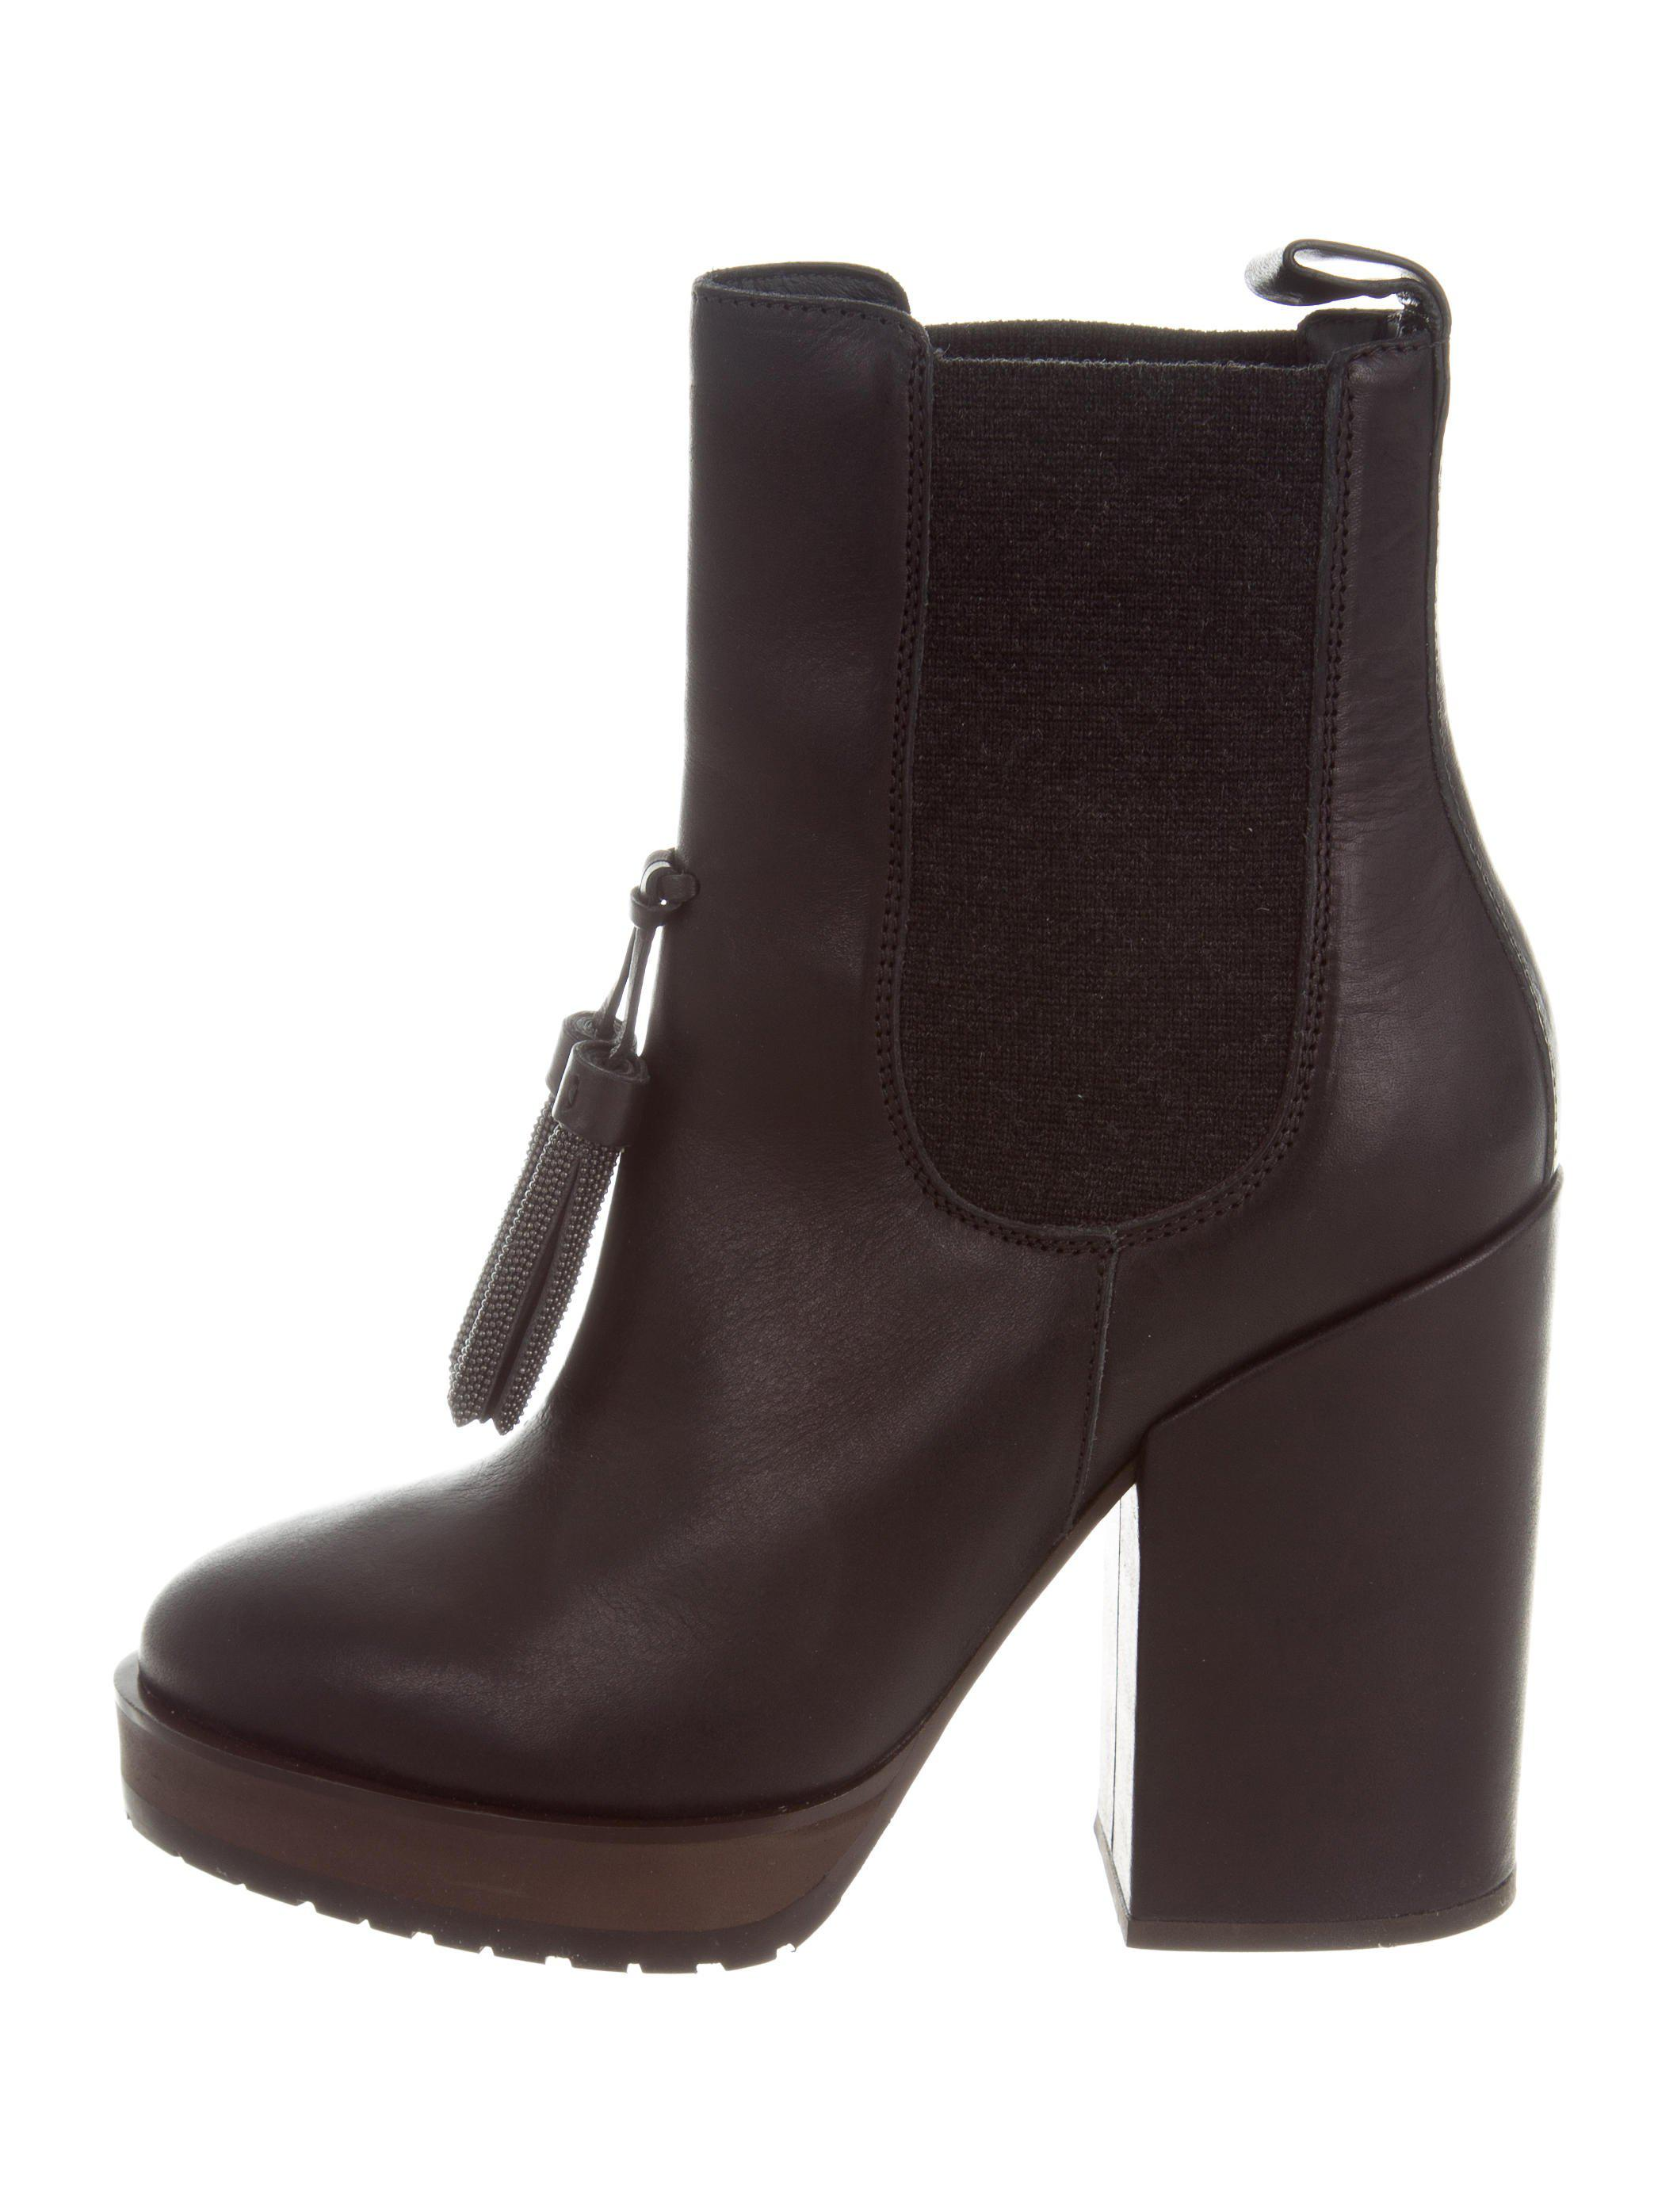 Brunello Cucinelli Leather Platform Ankle Boots w/ Tags purchase online iPoTjBzw